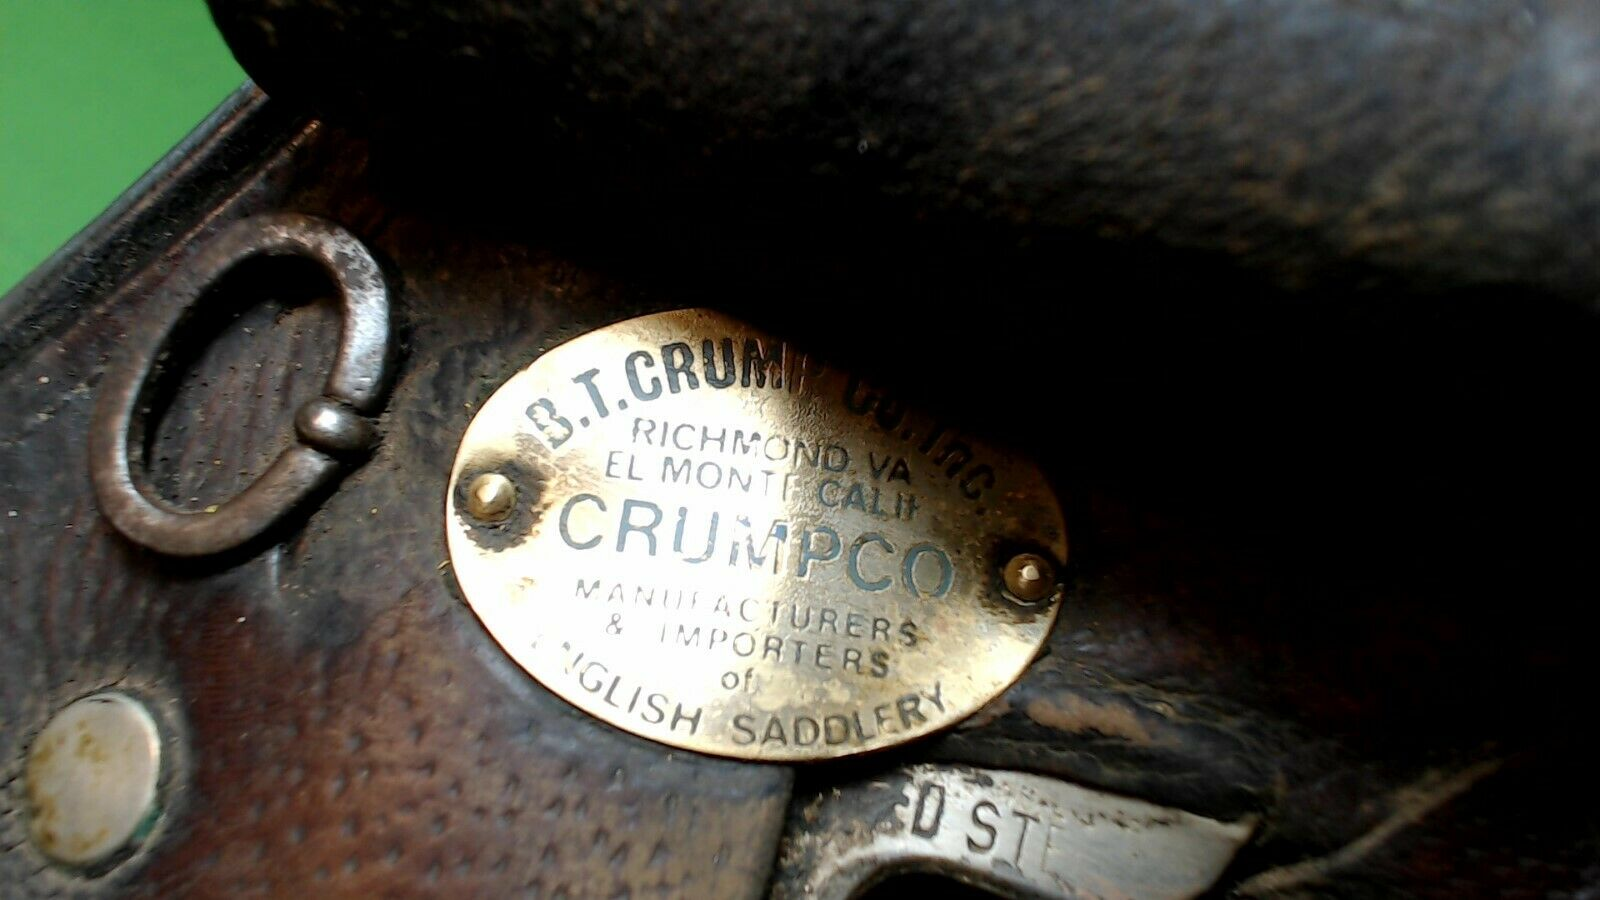 VINTAGE -- Anglais-Selle-Cuir-Made in England -- crumpco -- Springtree